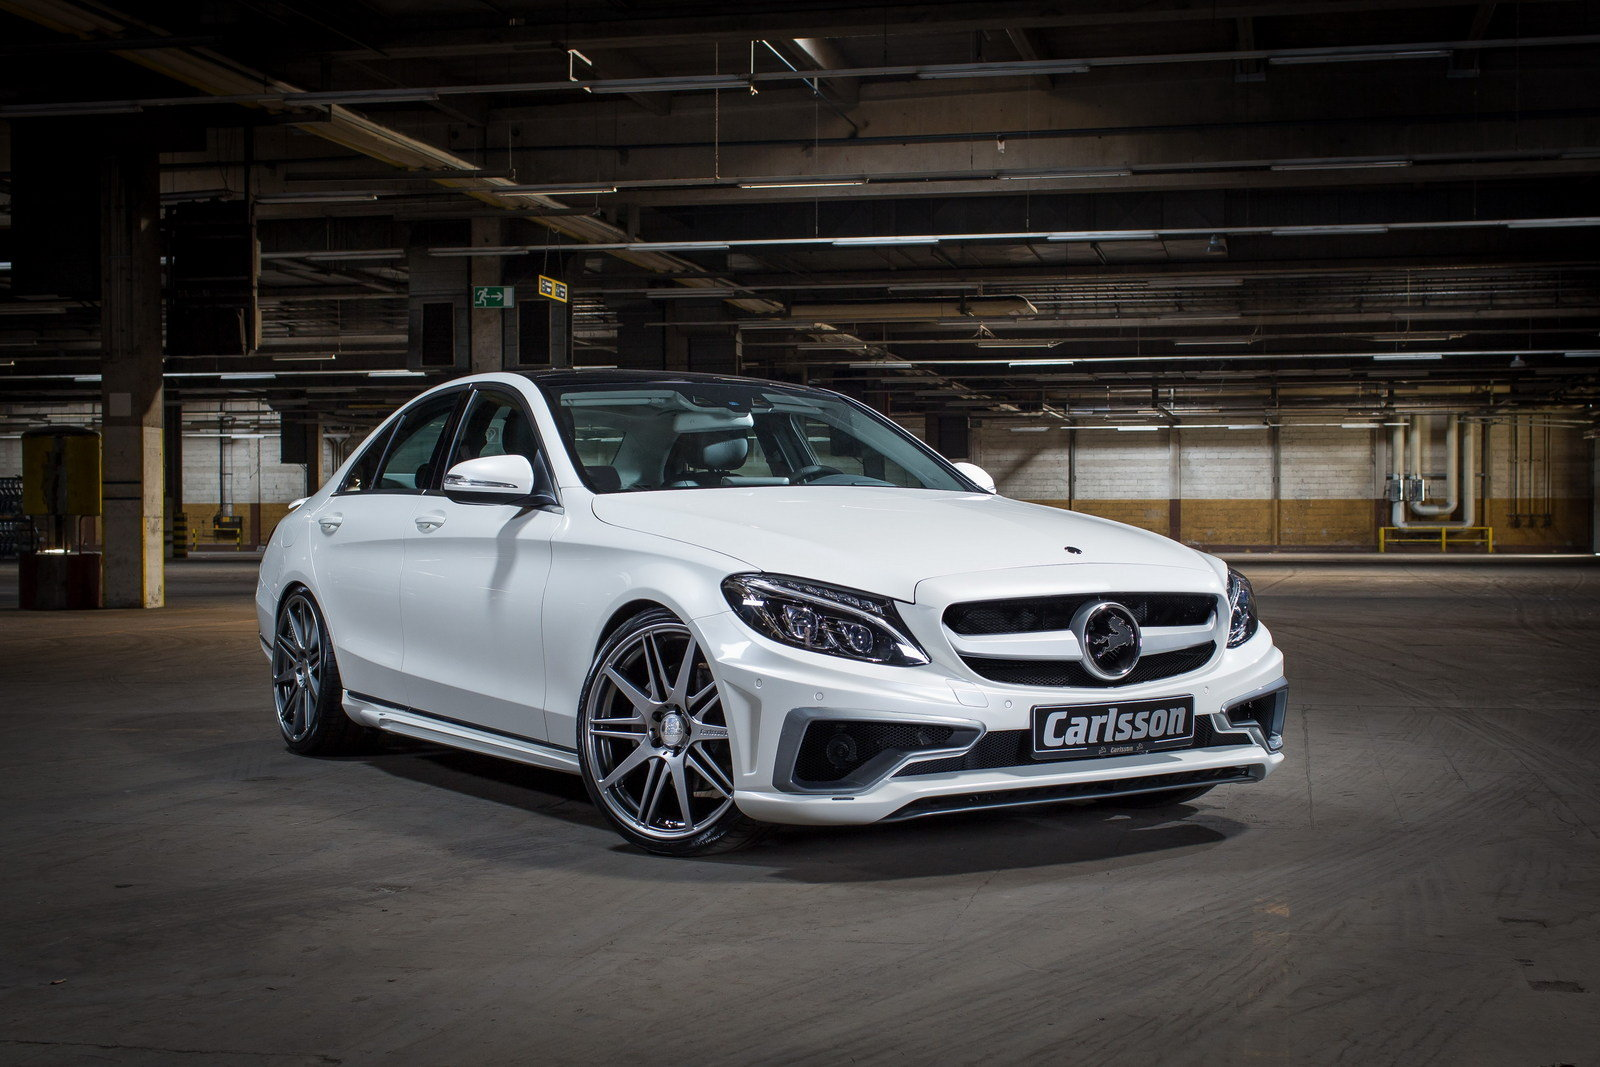 2014 mercedes c class by carlsson review top speed - Mercedes c class coupe 2014 review ...